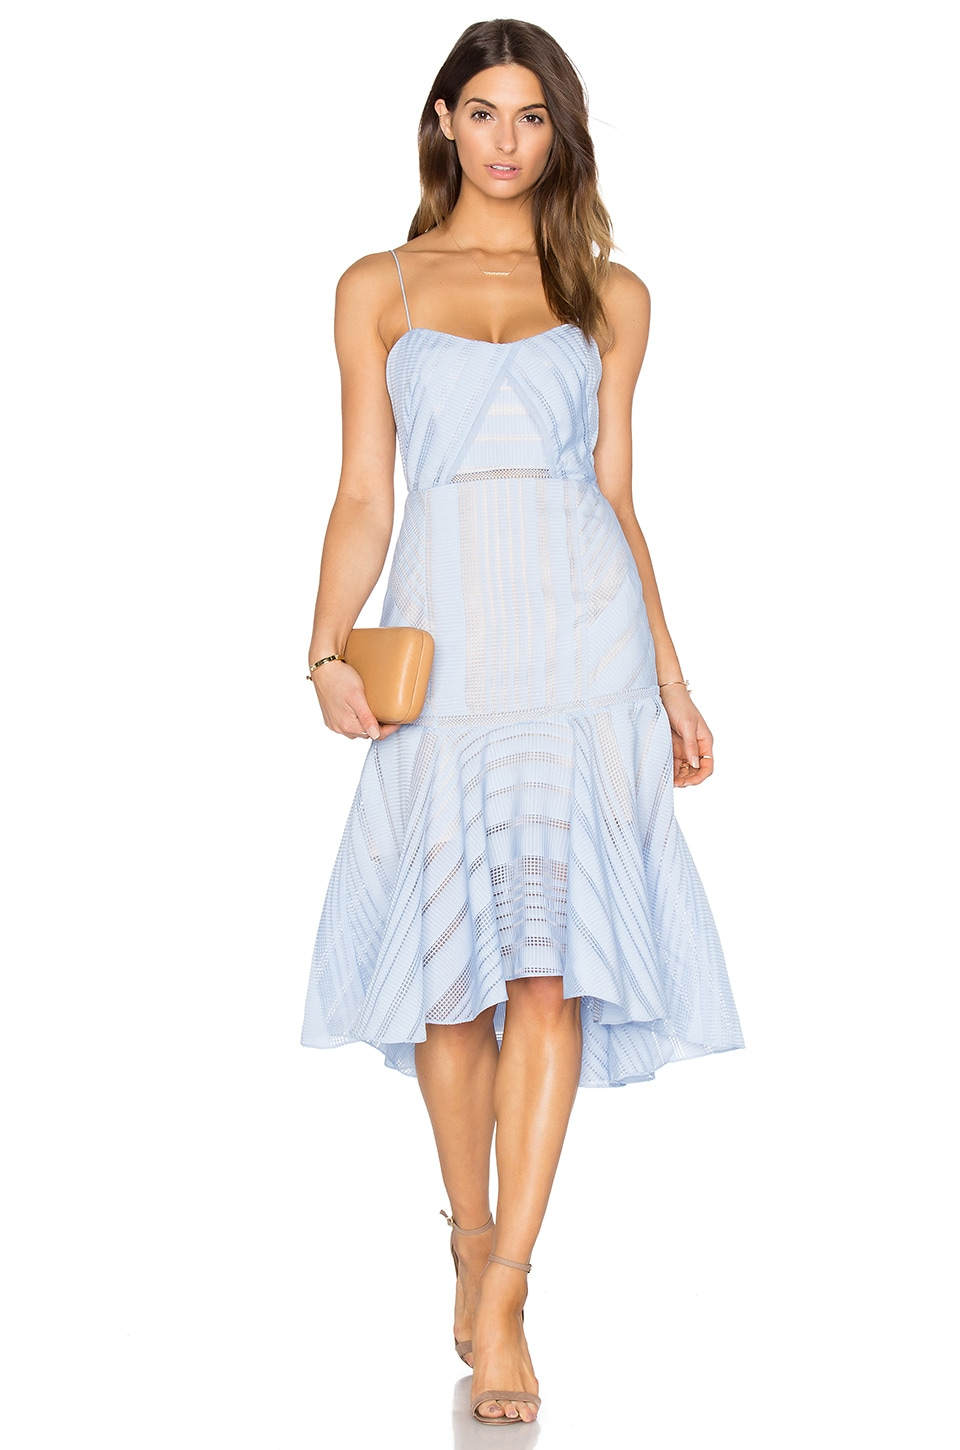 Argent Bustier Dress by Acler